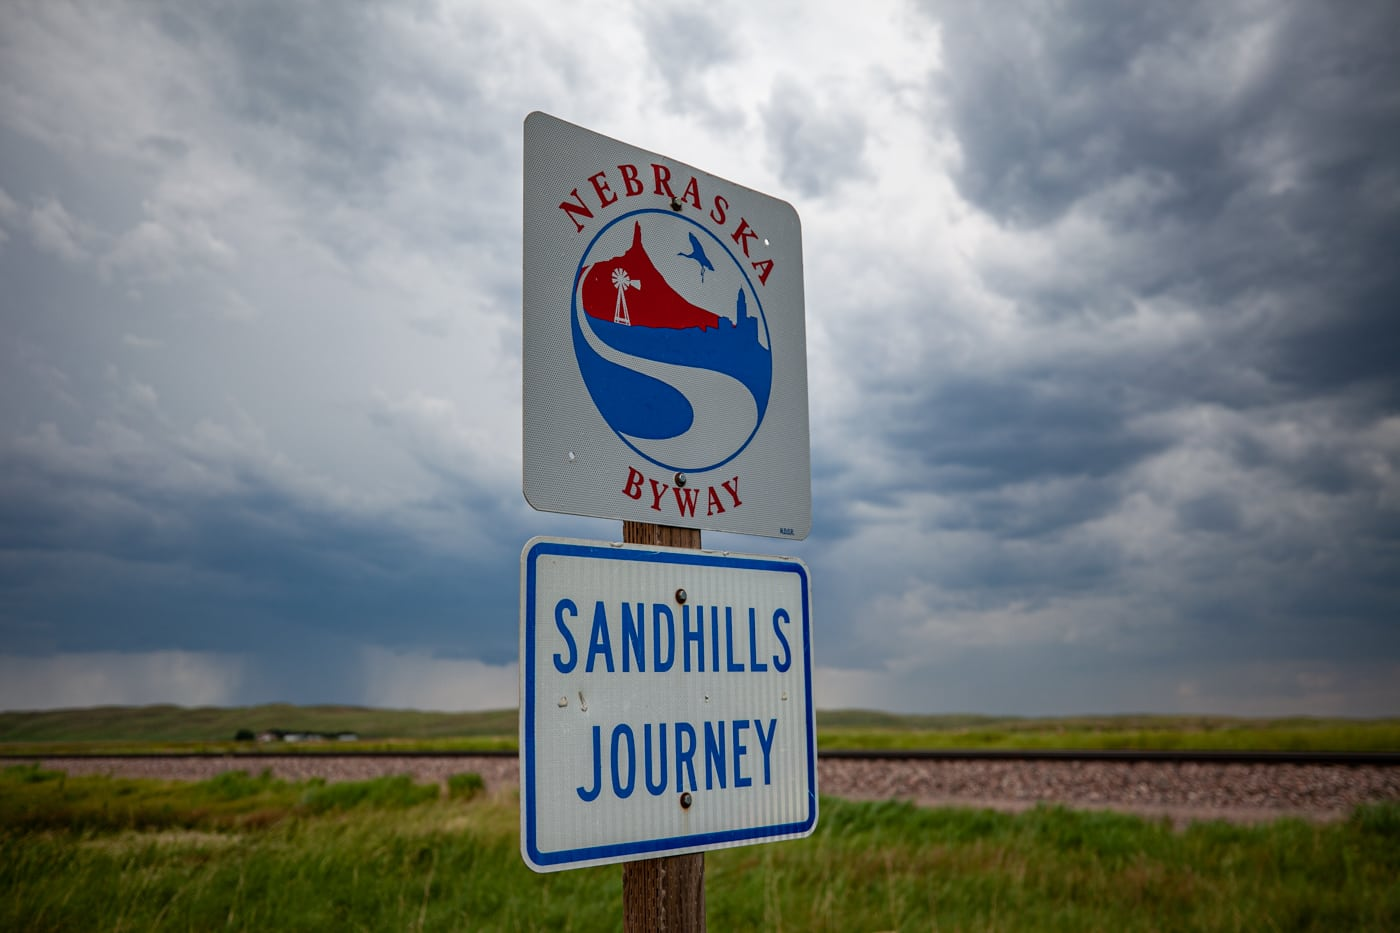 Nebraska Sandhills Journey Scenic Byway Road Sign